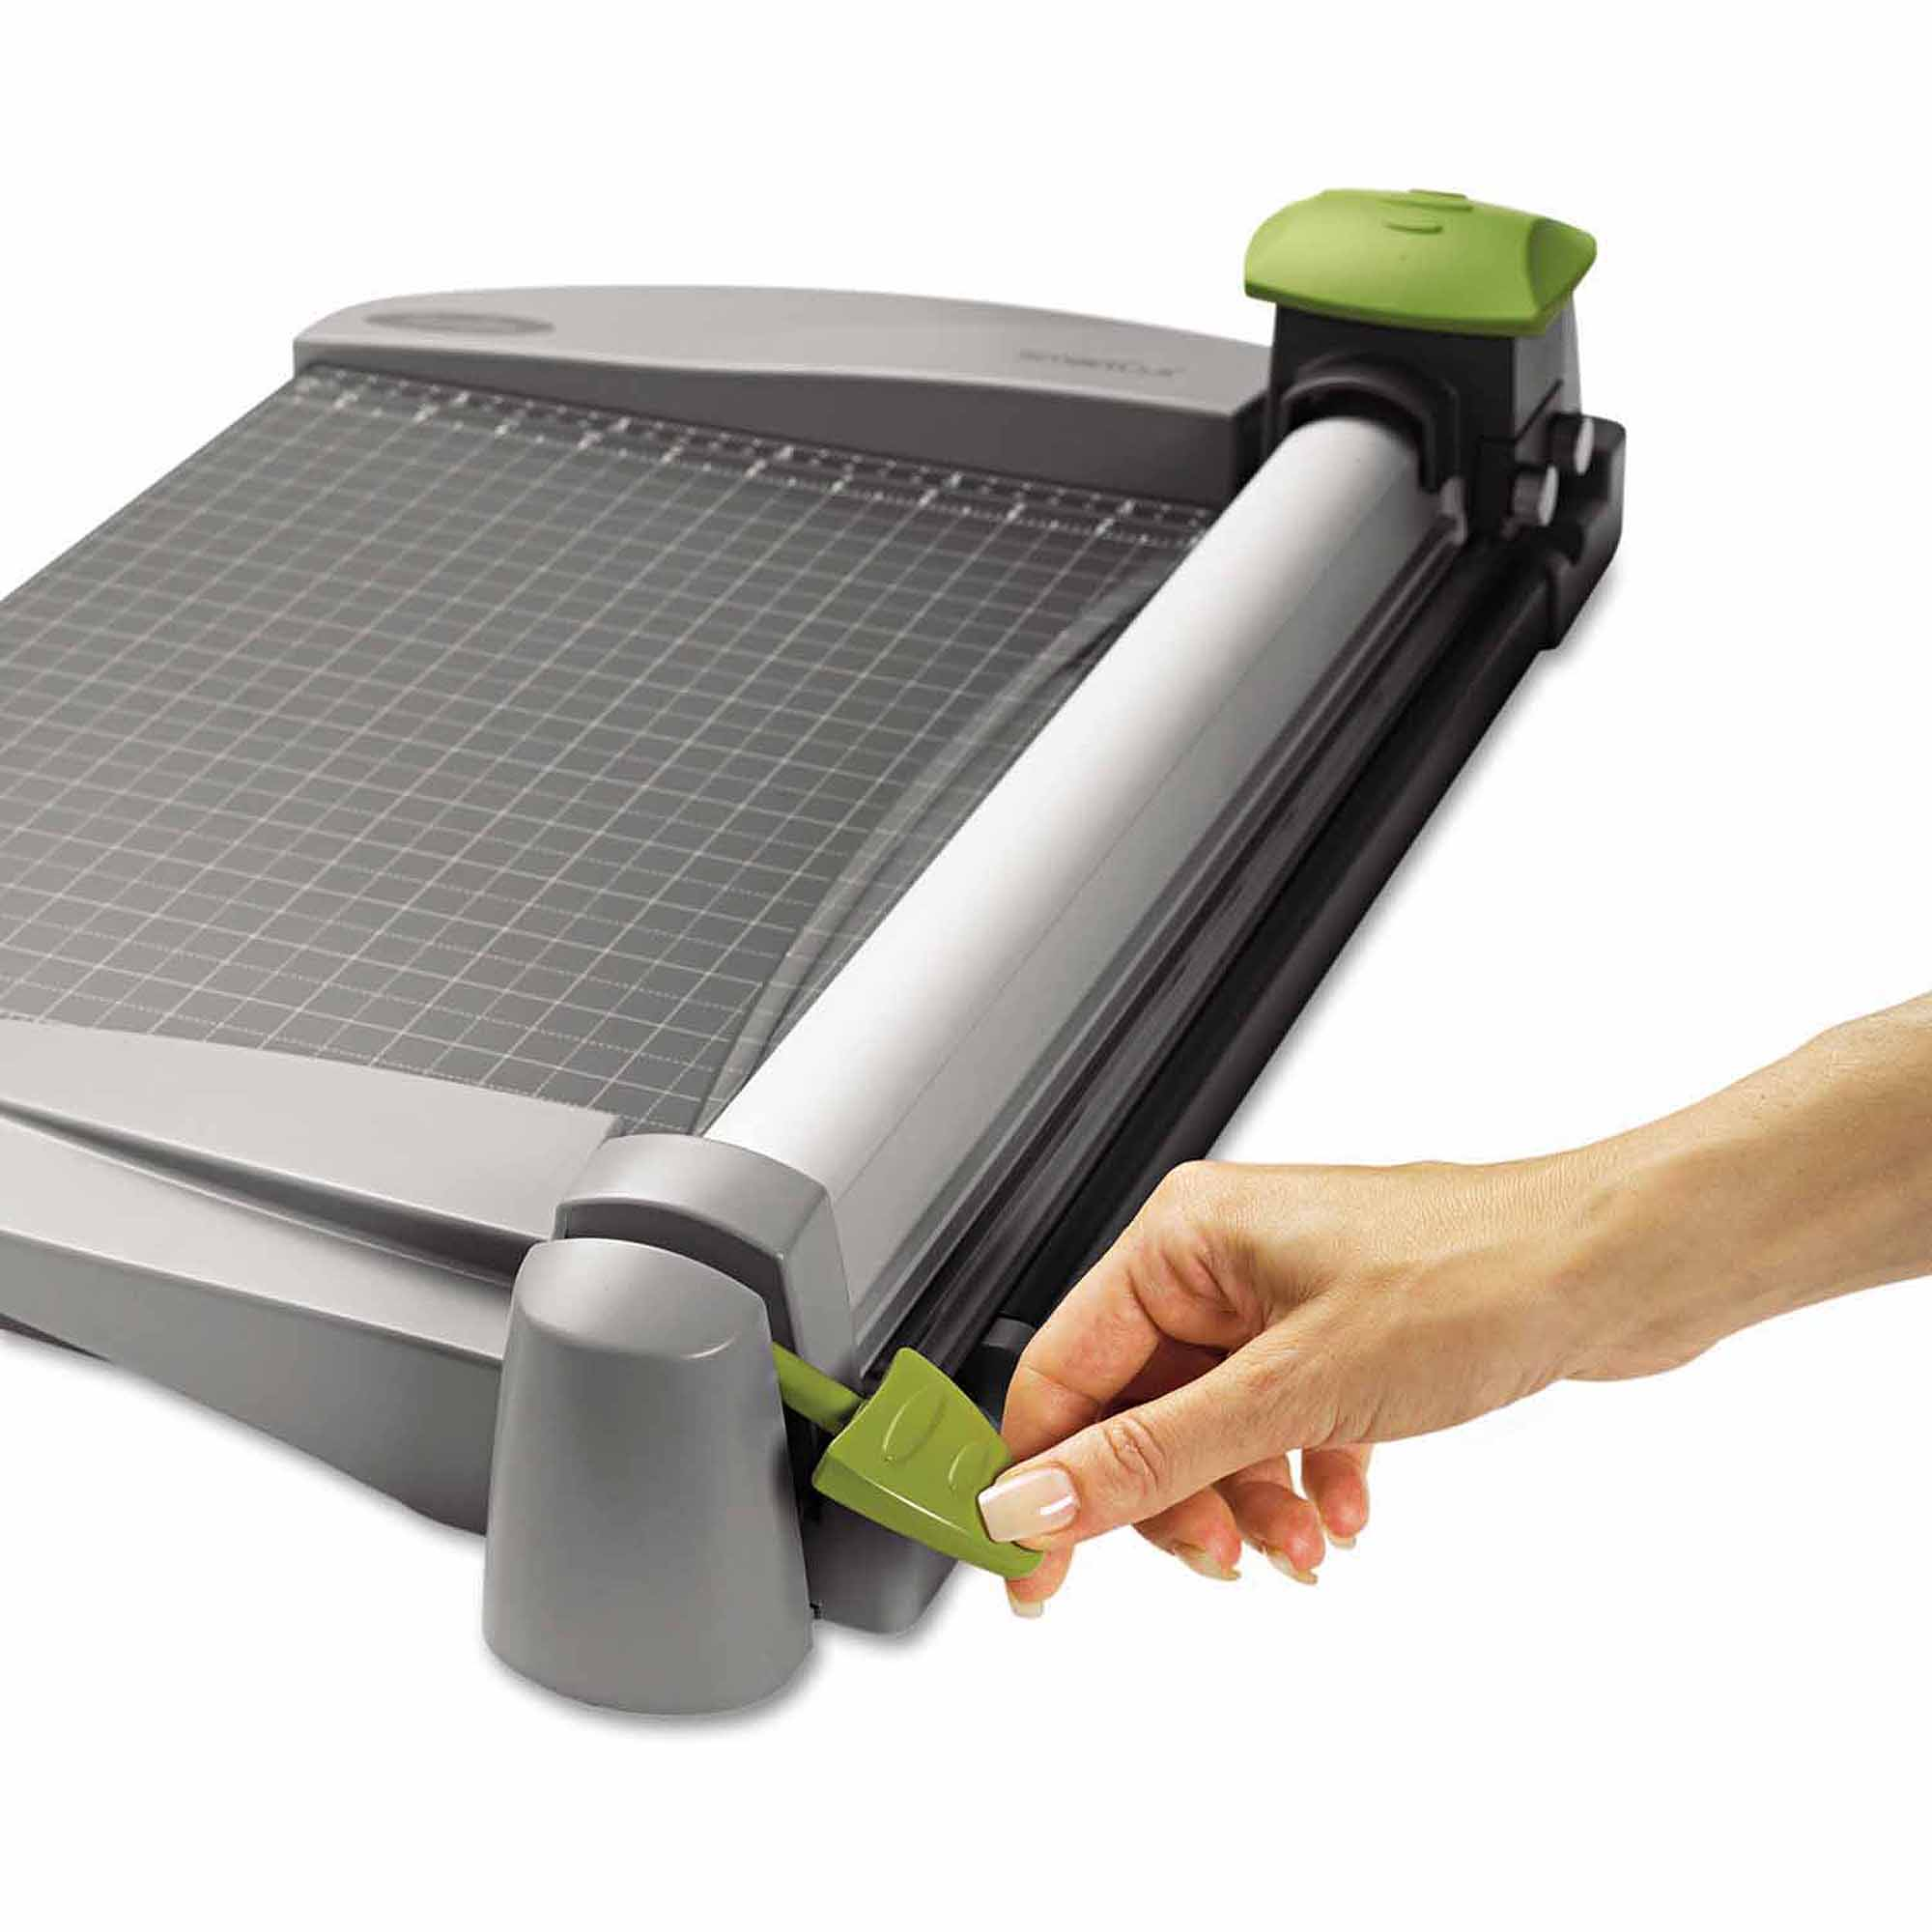 "Swingline SmartCut Commercial Heavy-Duty Rotary Trimmer, 30 Sheets, Metal Base, 12"" x 22"""